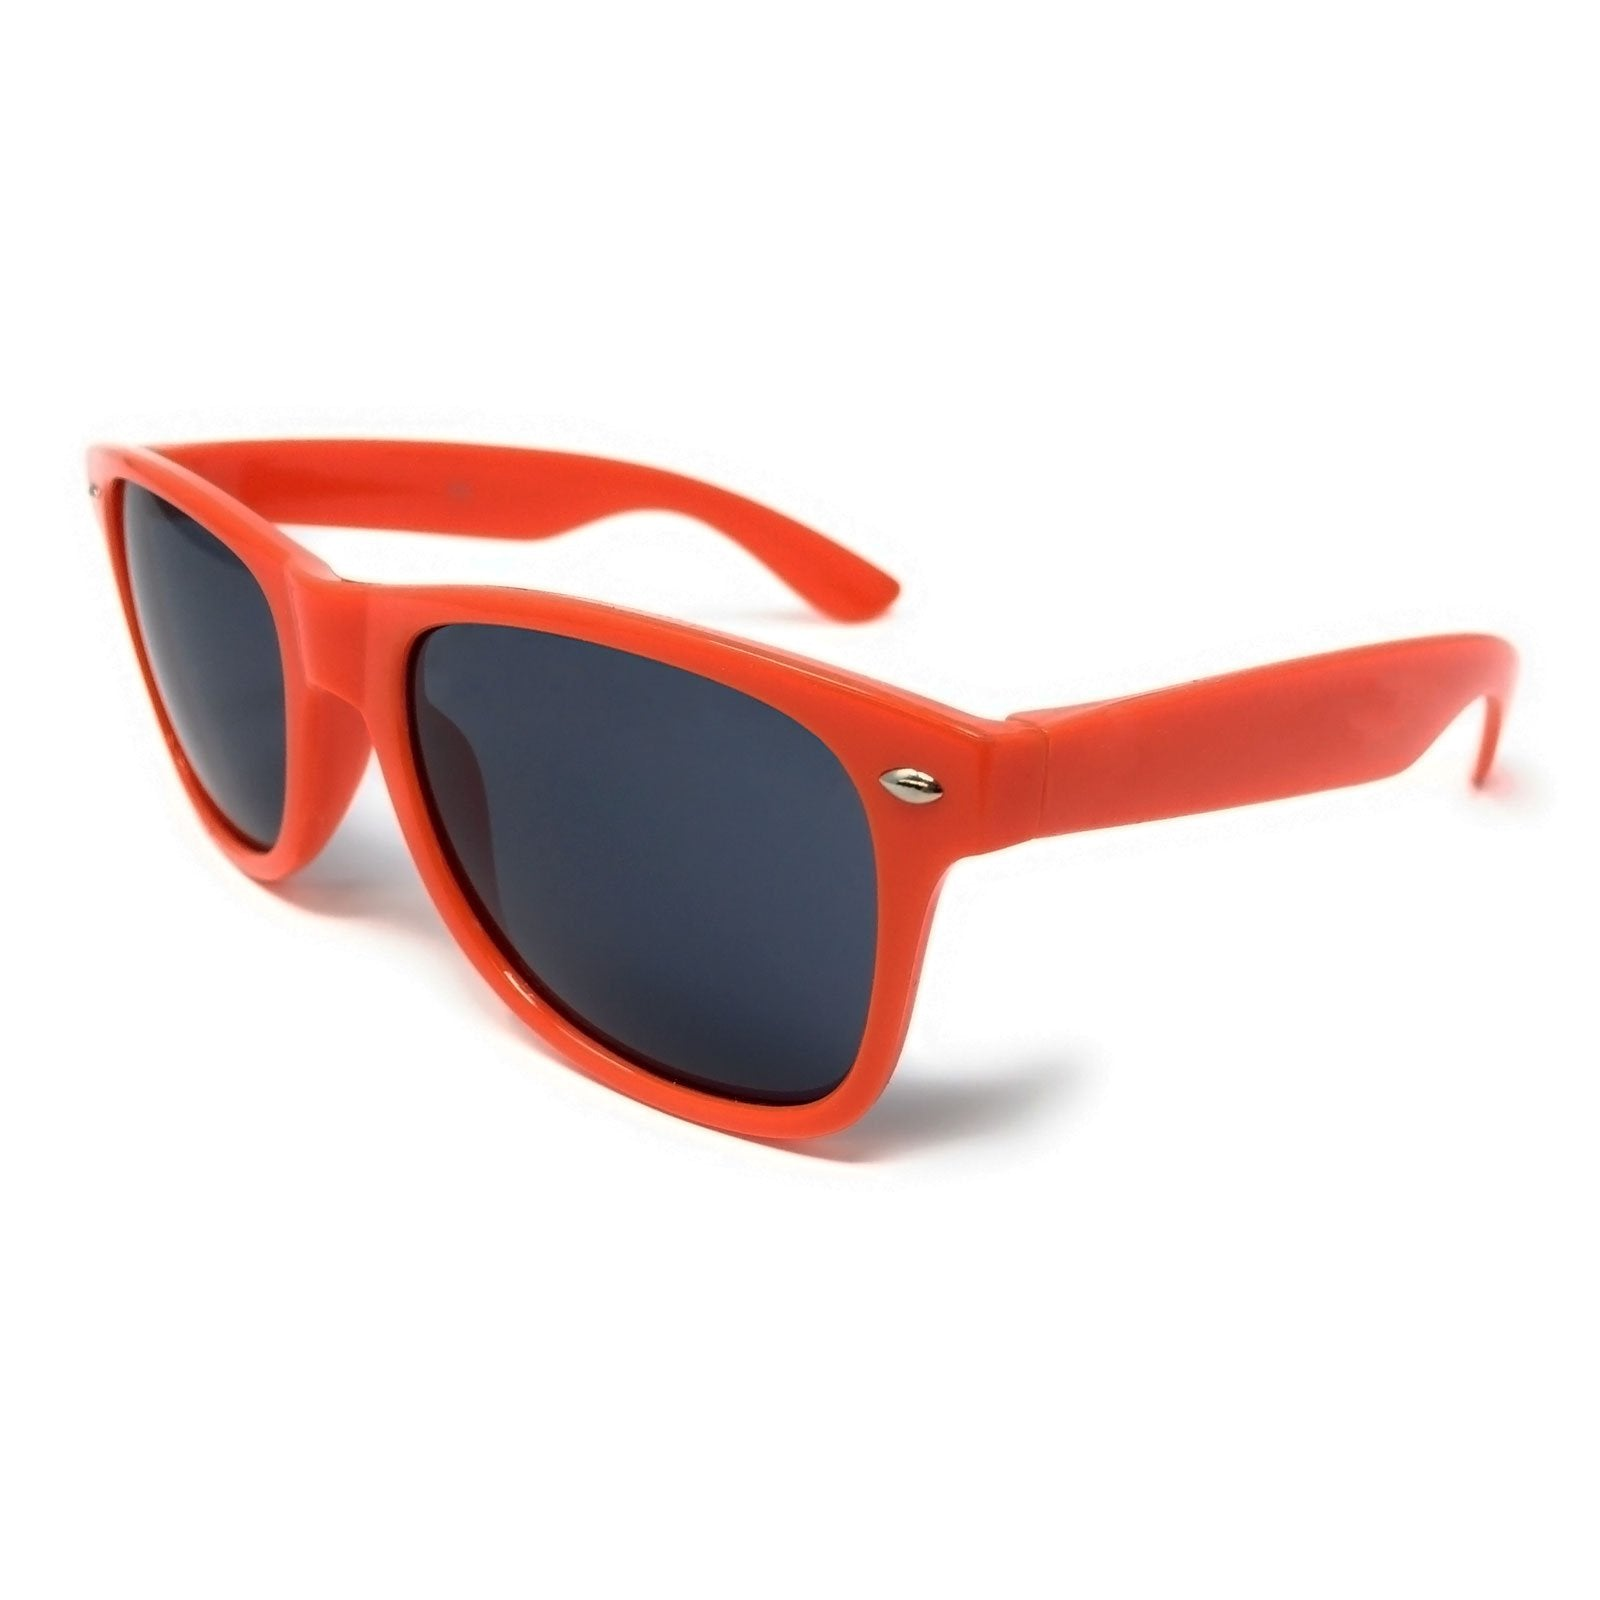 Wholesale Kids Classic Sunglasses - Orange Frame, Black Lens